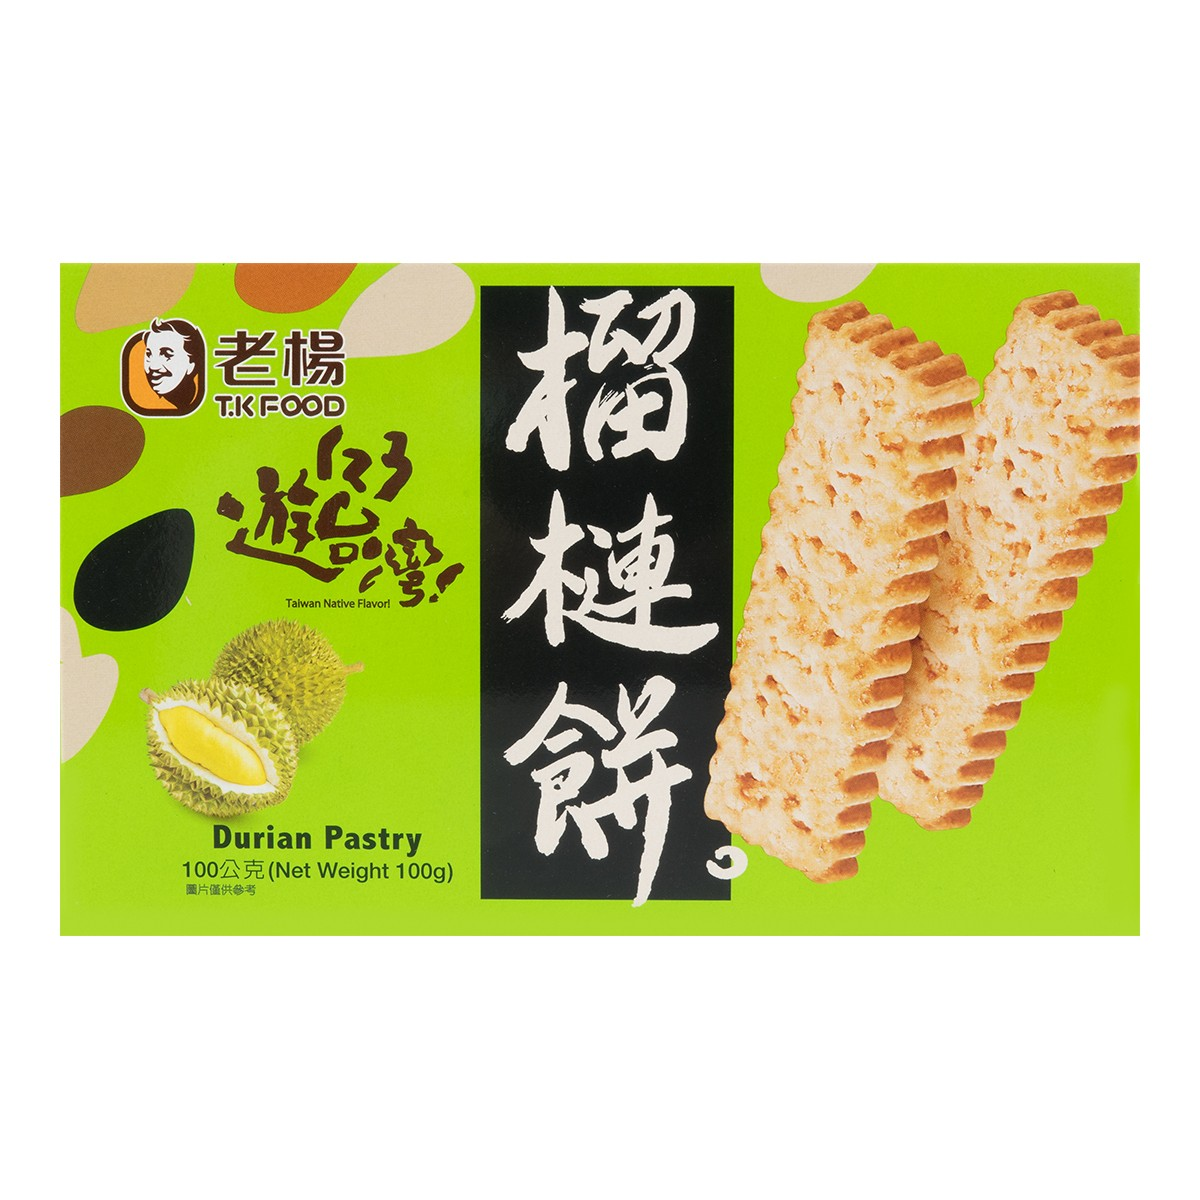 TK FOOD Durian Pastry 100g